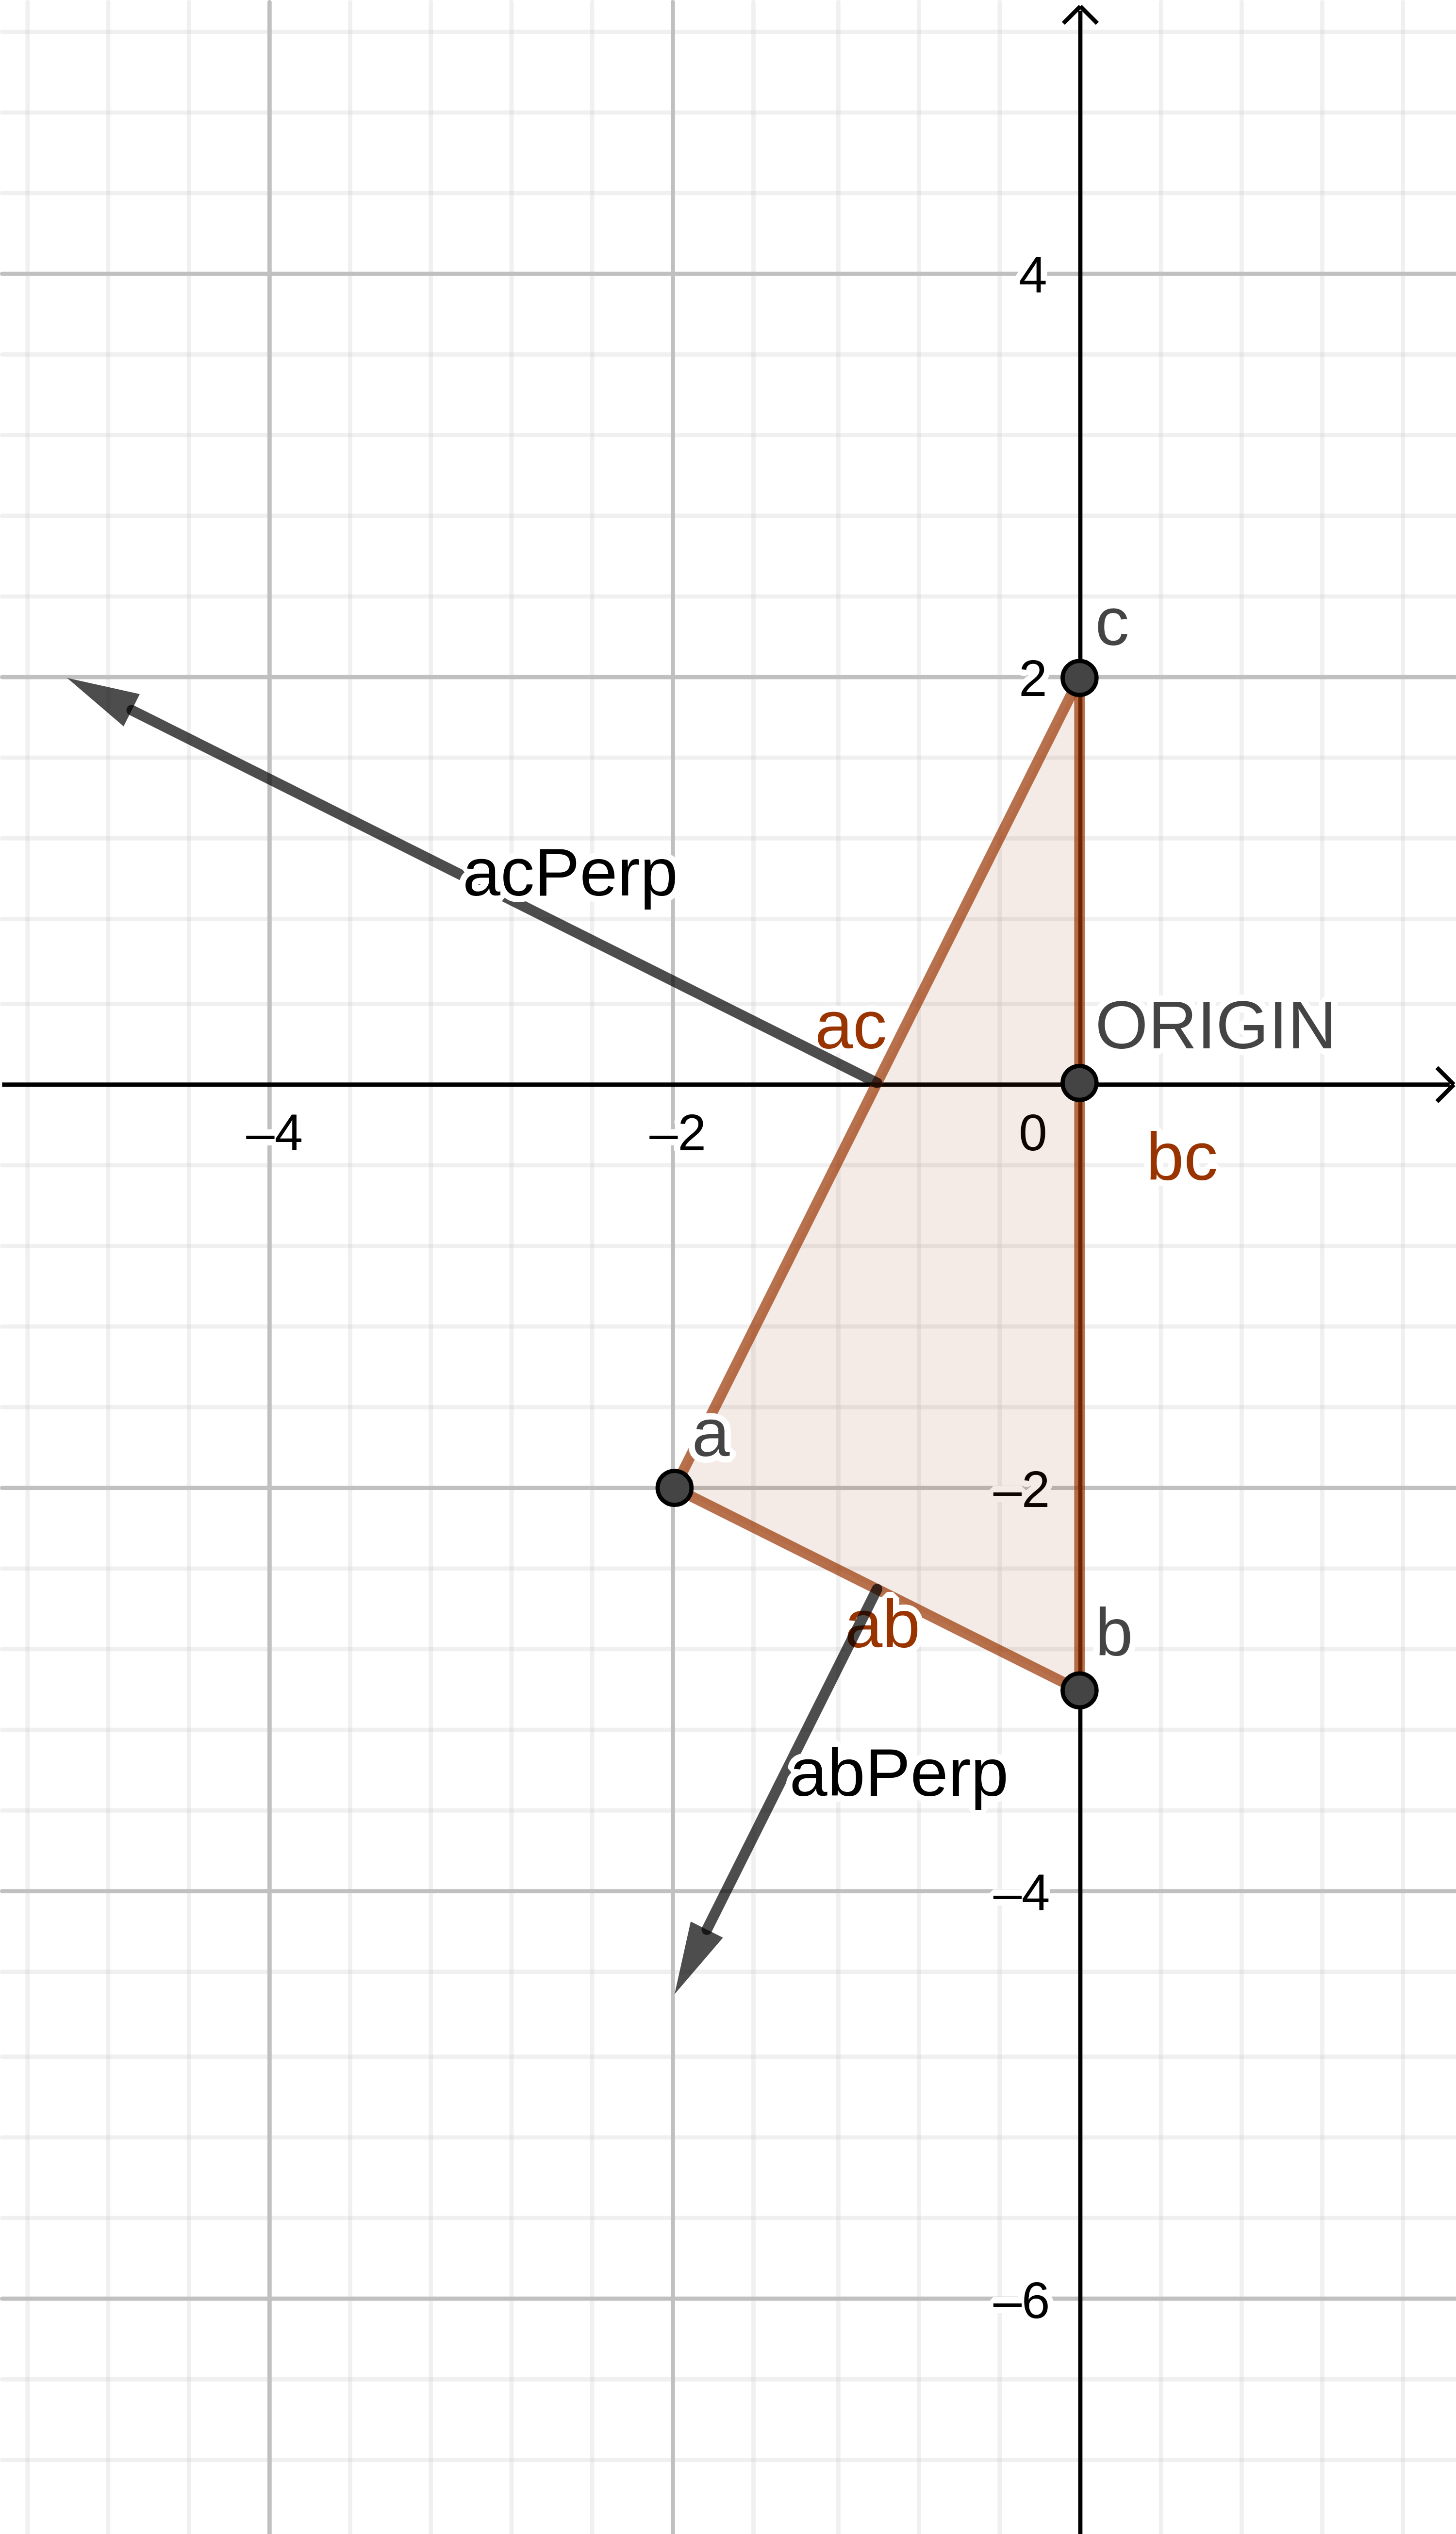 Lines ab, ac and bc and relevant perpendiculars